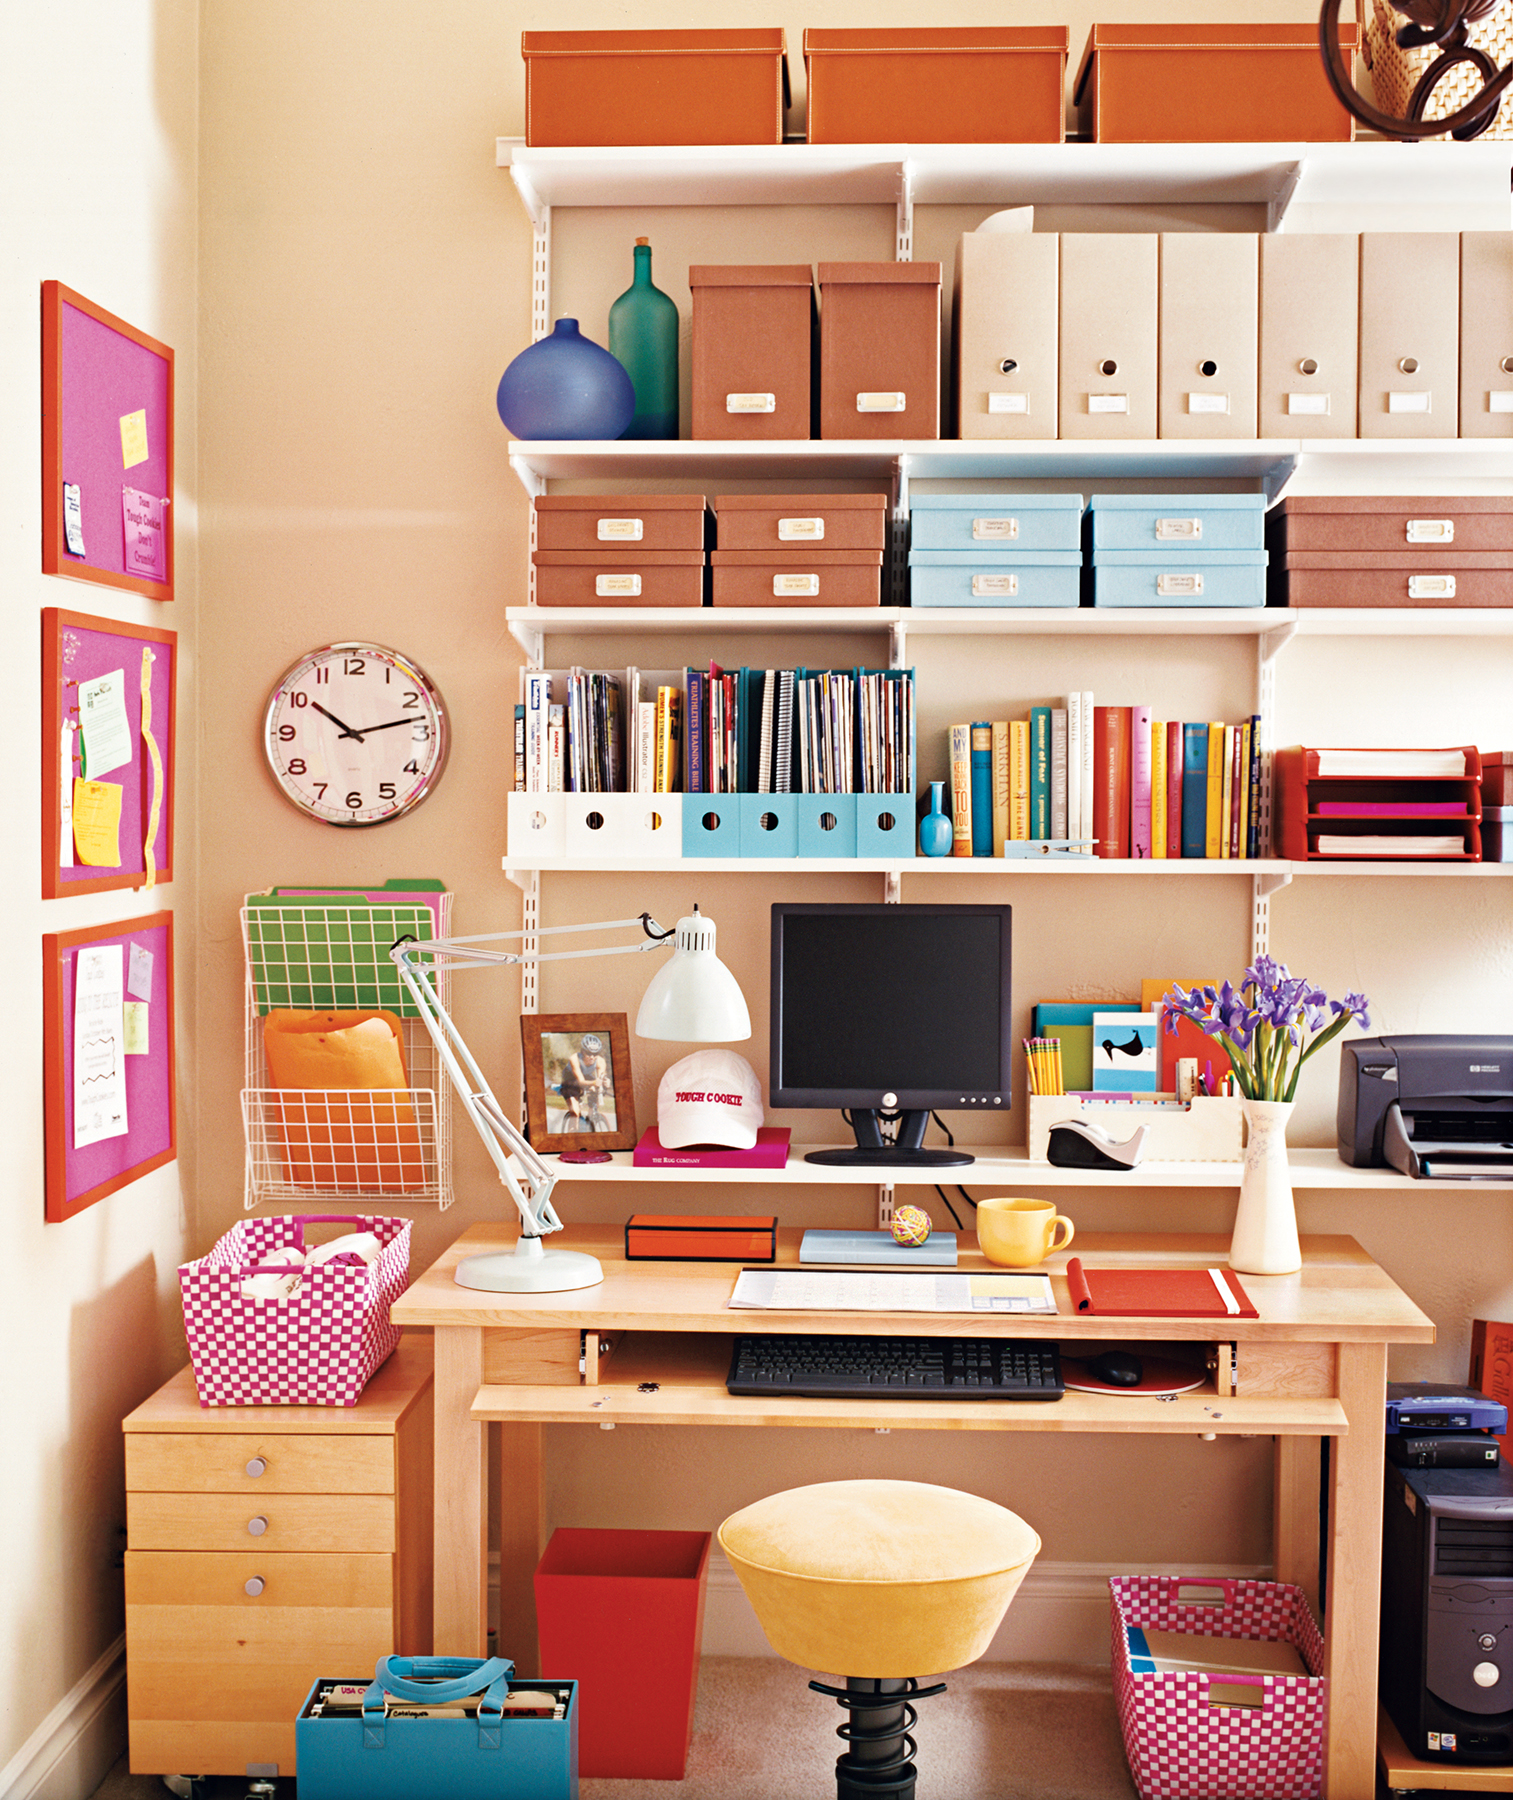 Organized Office 21 ideas for an organized home office | real simple